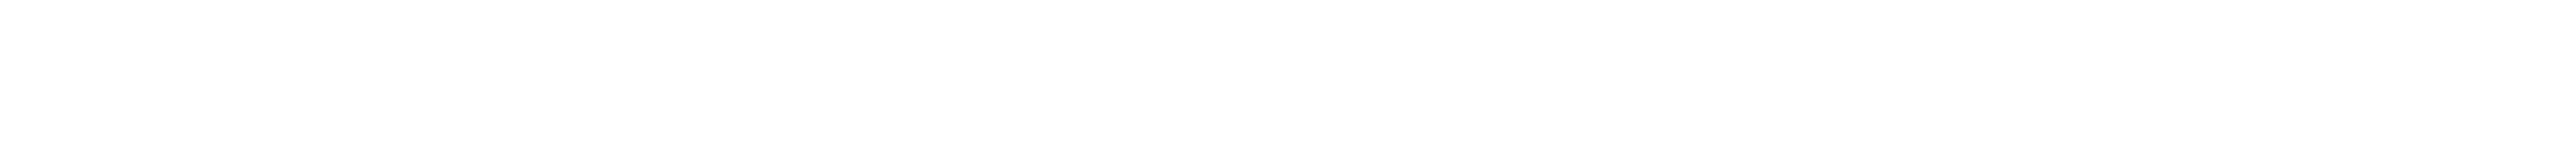 Black lace border png. Clip art gallery yopriceville